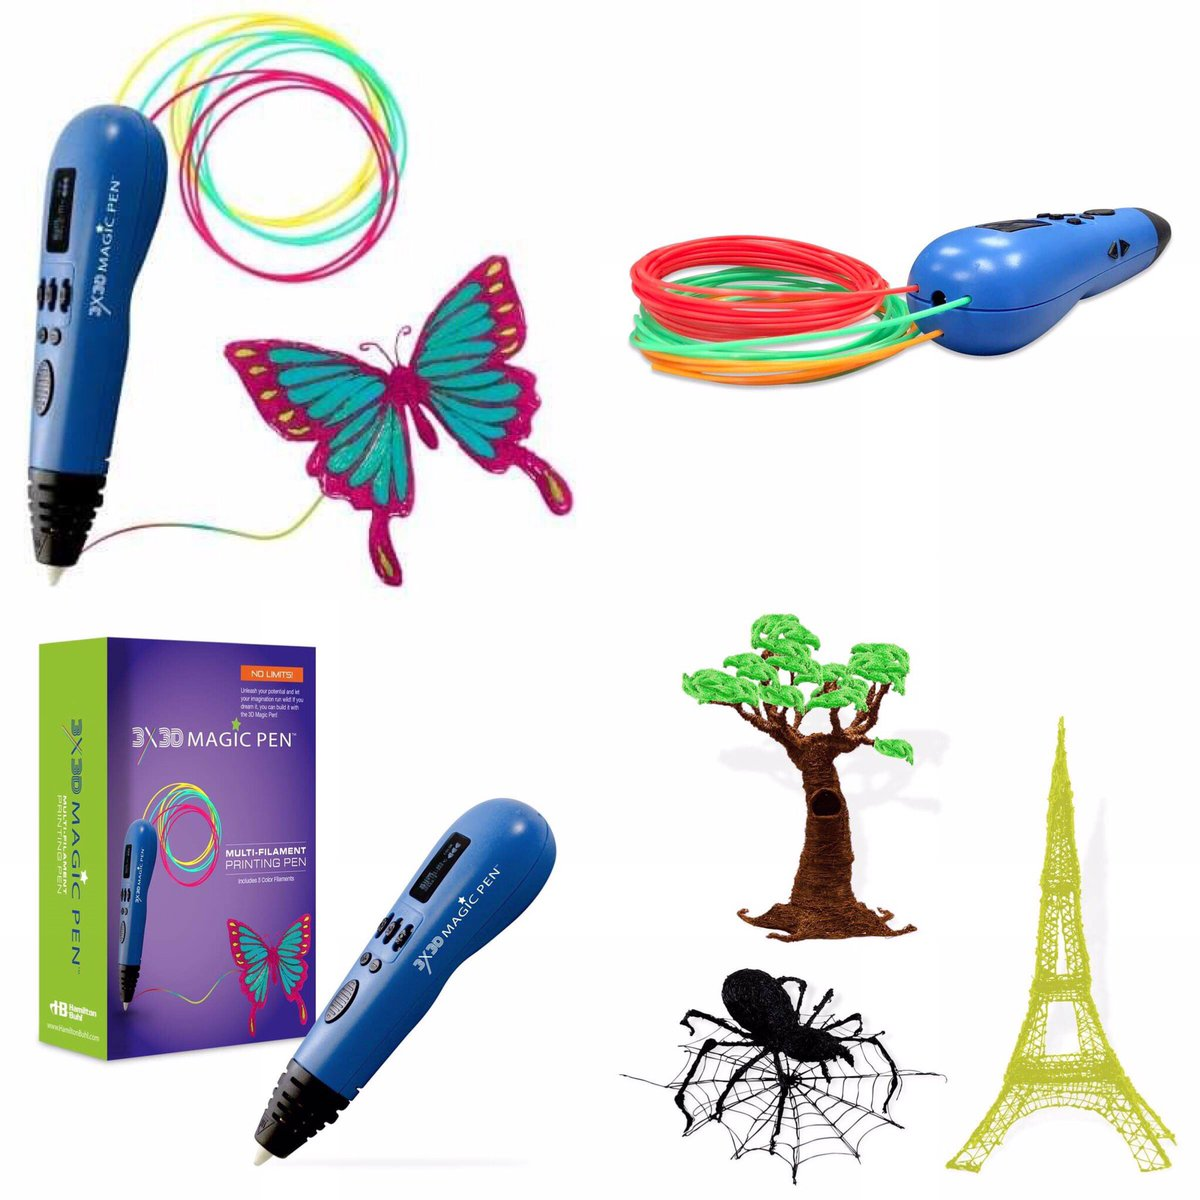 Looking to increase student critical thinking skills for 3D #STEAM design projects? Check out the latest #3D pen from #HamiltonBuhl ! Read our blog 😀🎧💻 Call toll free 866 926 1669 https://t.co/SF5LjUOjEy  #purchasing #procurement #STEMDirector #curriculumdirector https://t.co/6QWkZ2irmQ